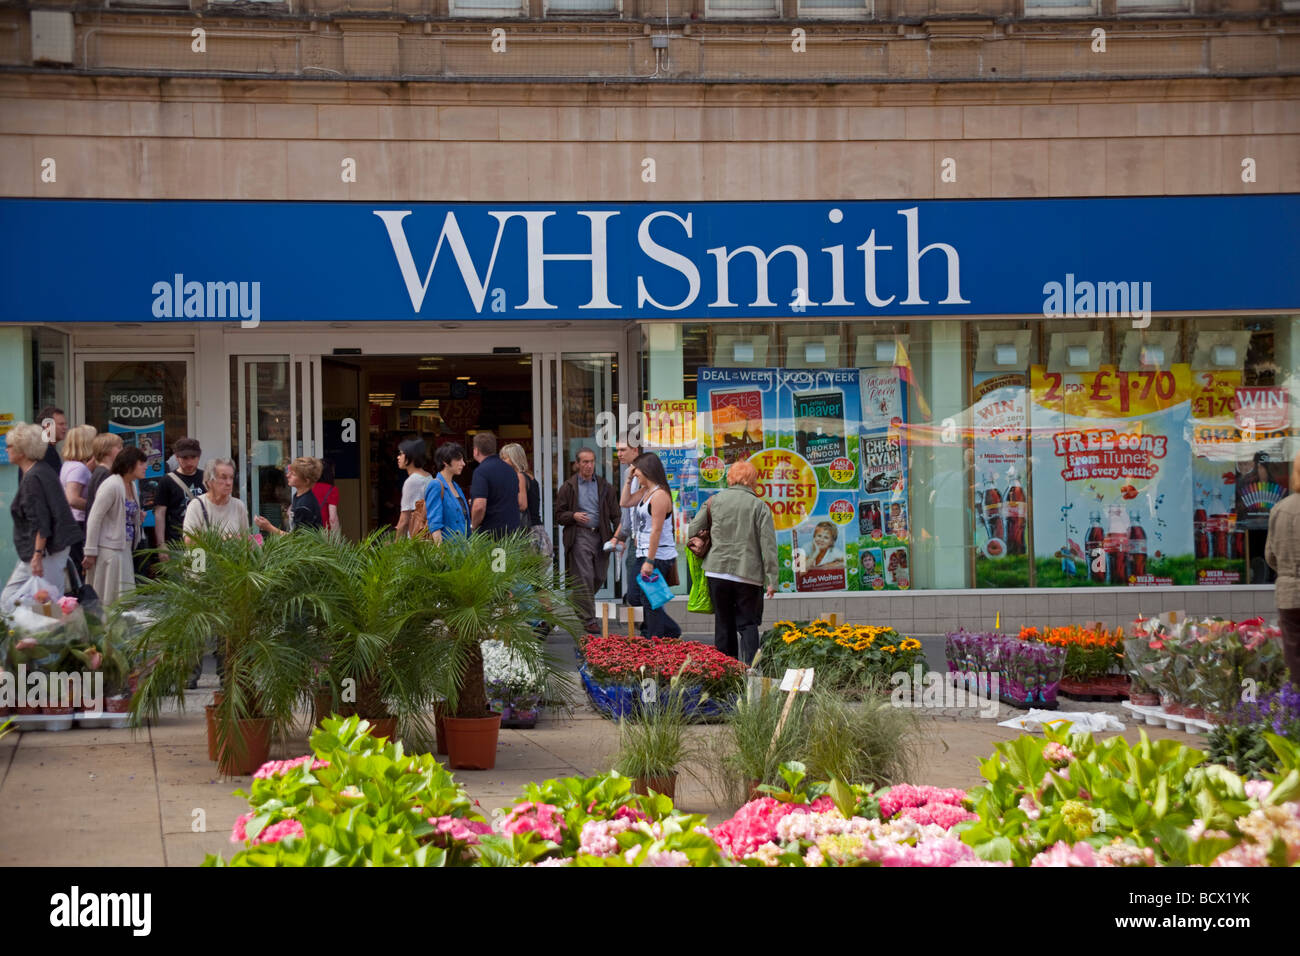 WH Smiths - Stock Image